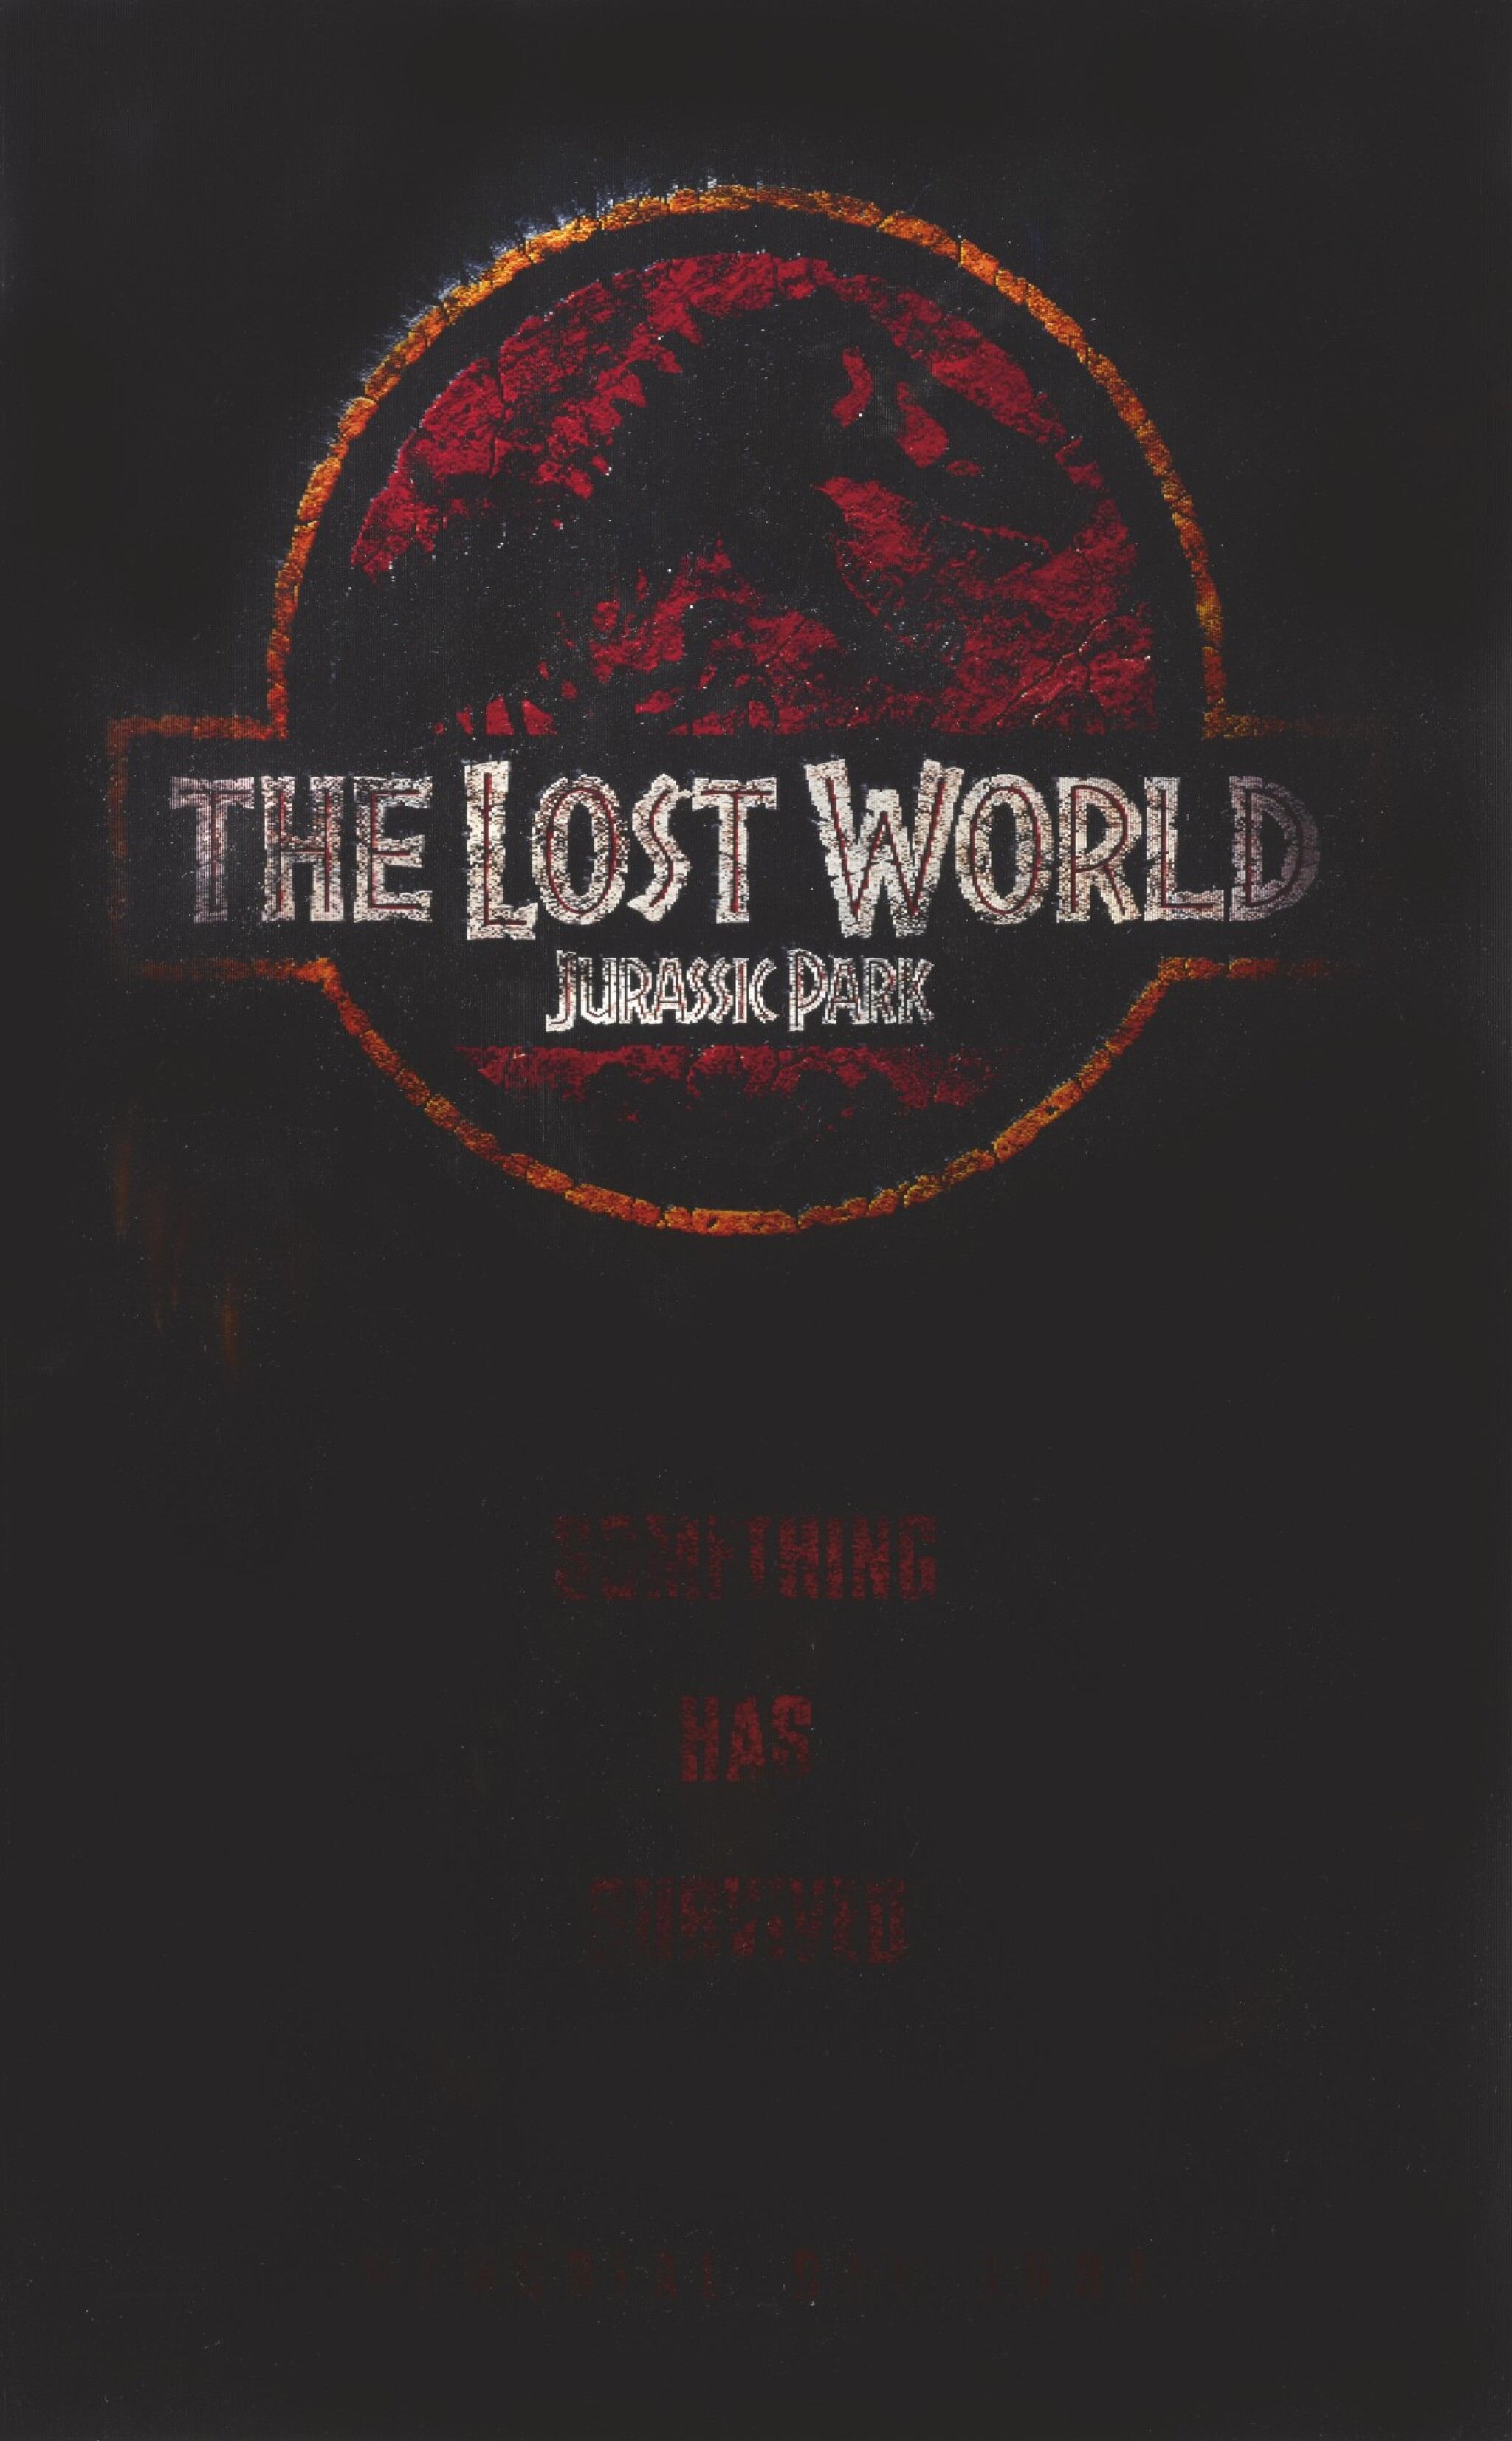 The Lost World Jurassic Park 1997 3d Lenticular Us Original Film Posters Online2020 Sotheby S